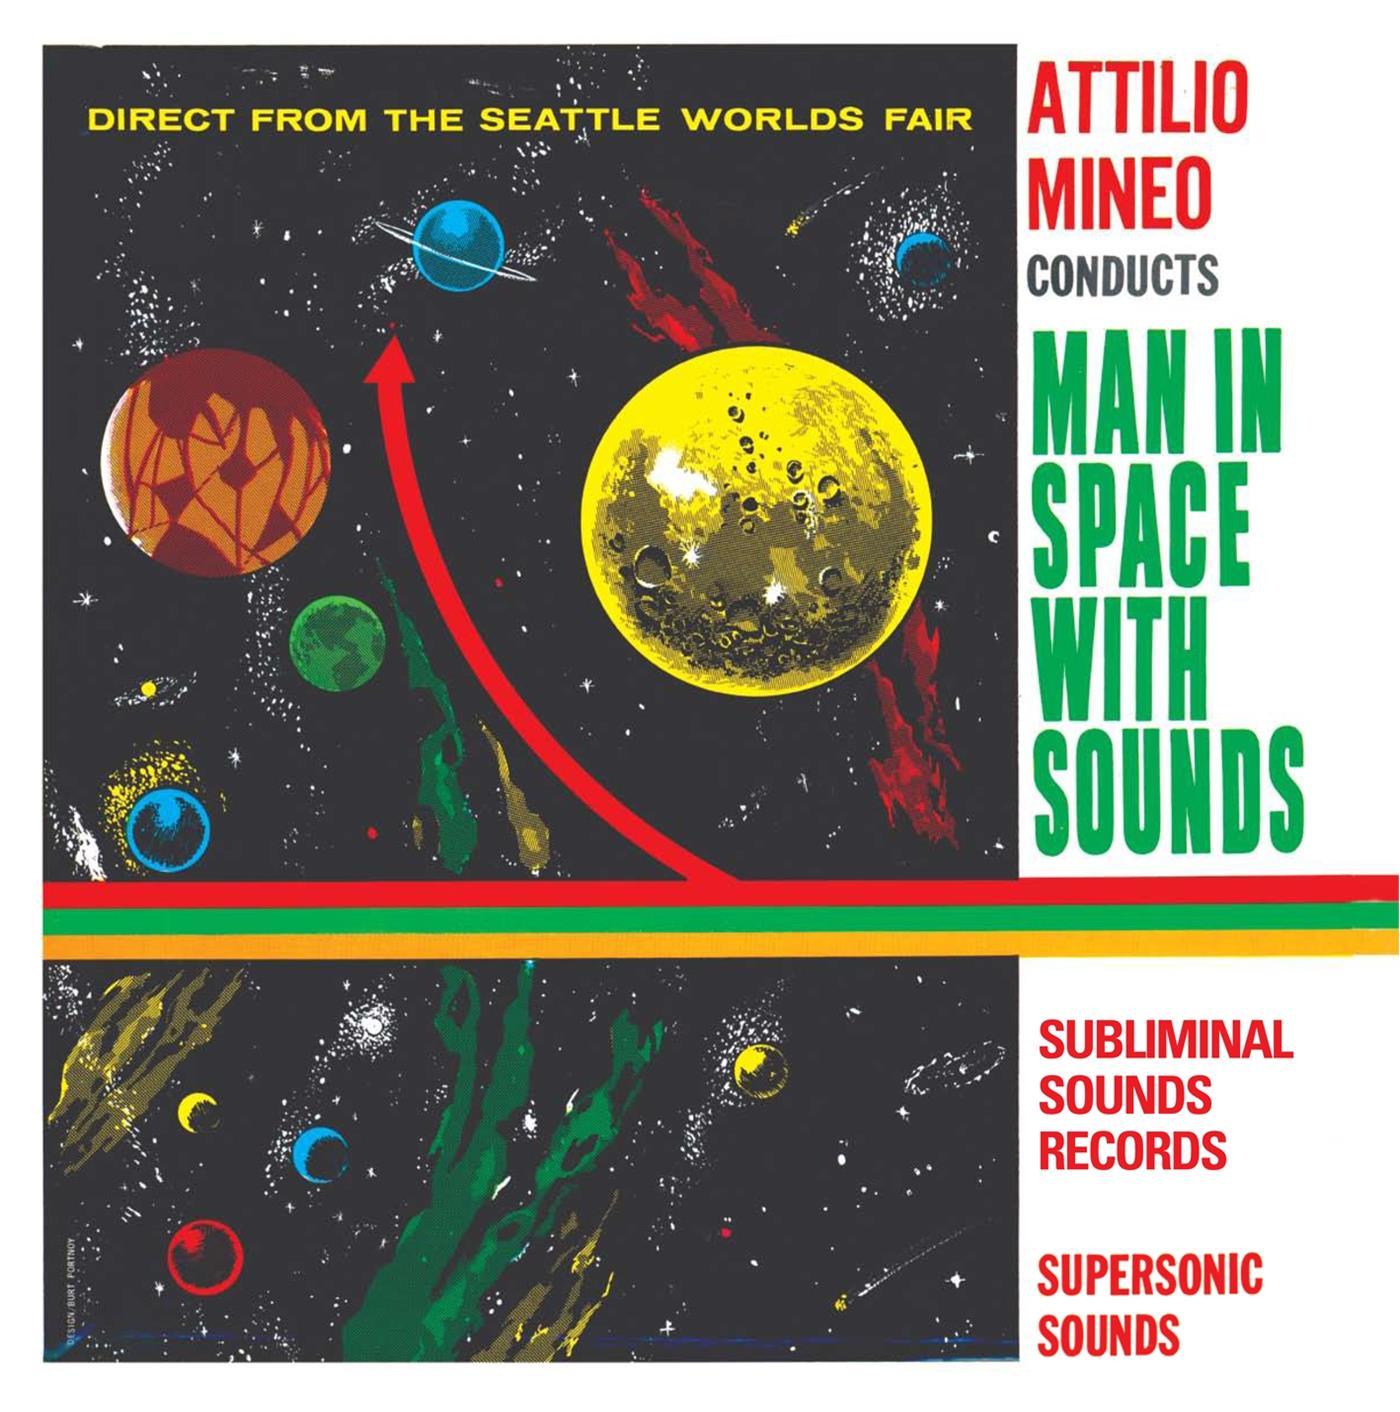 SUB081LP Subliminal Sounds  Attilio MIneo Man In Space With Sounds (LP)